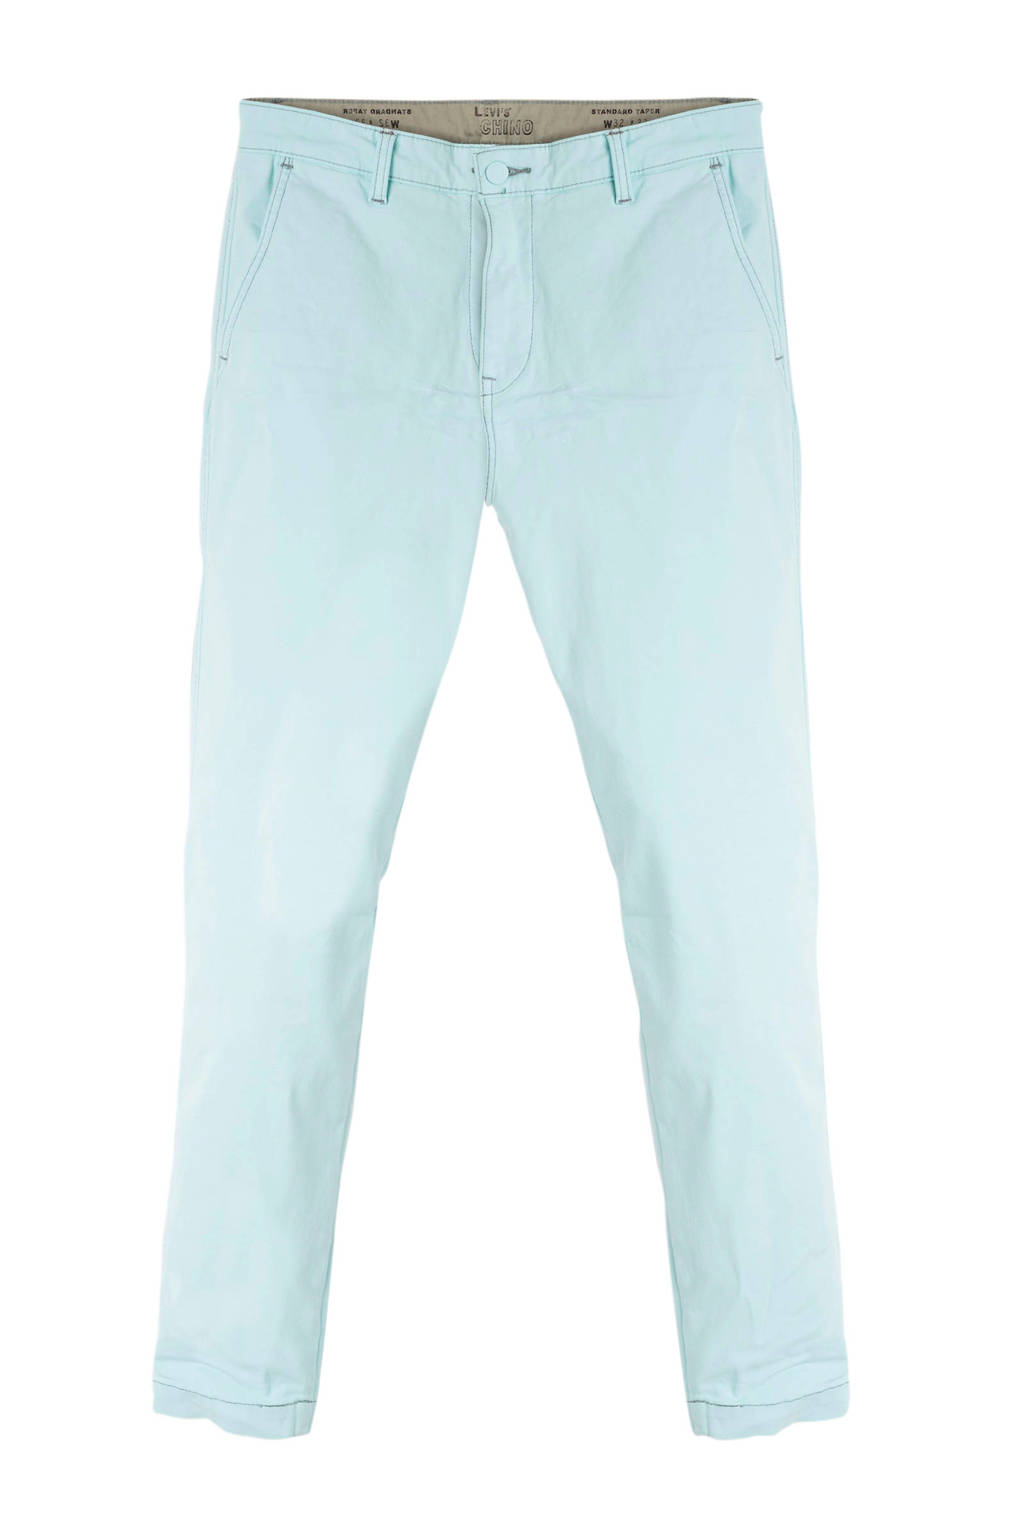 Levi's slim fit chino clearwater shady, Clearwater Shady